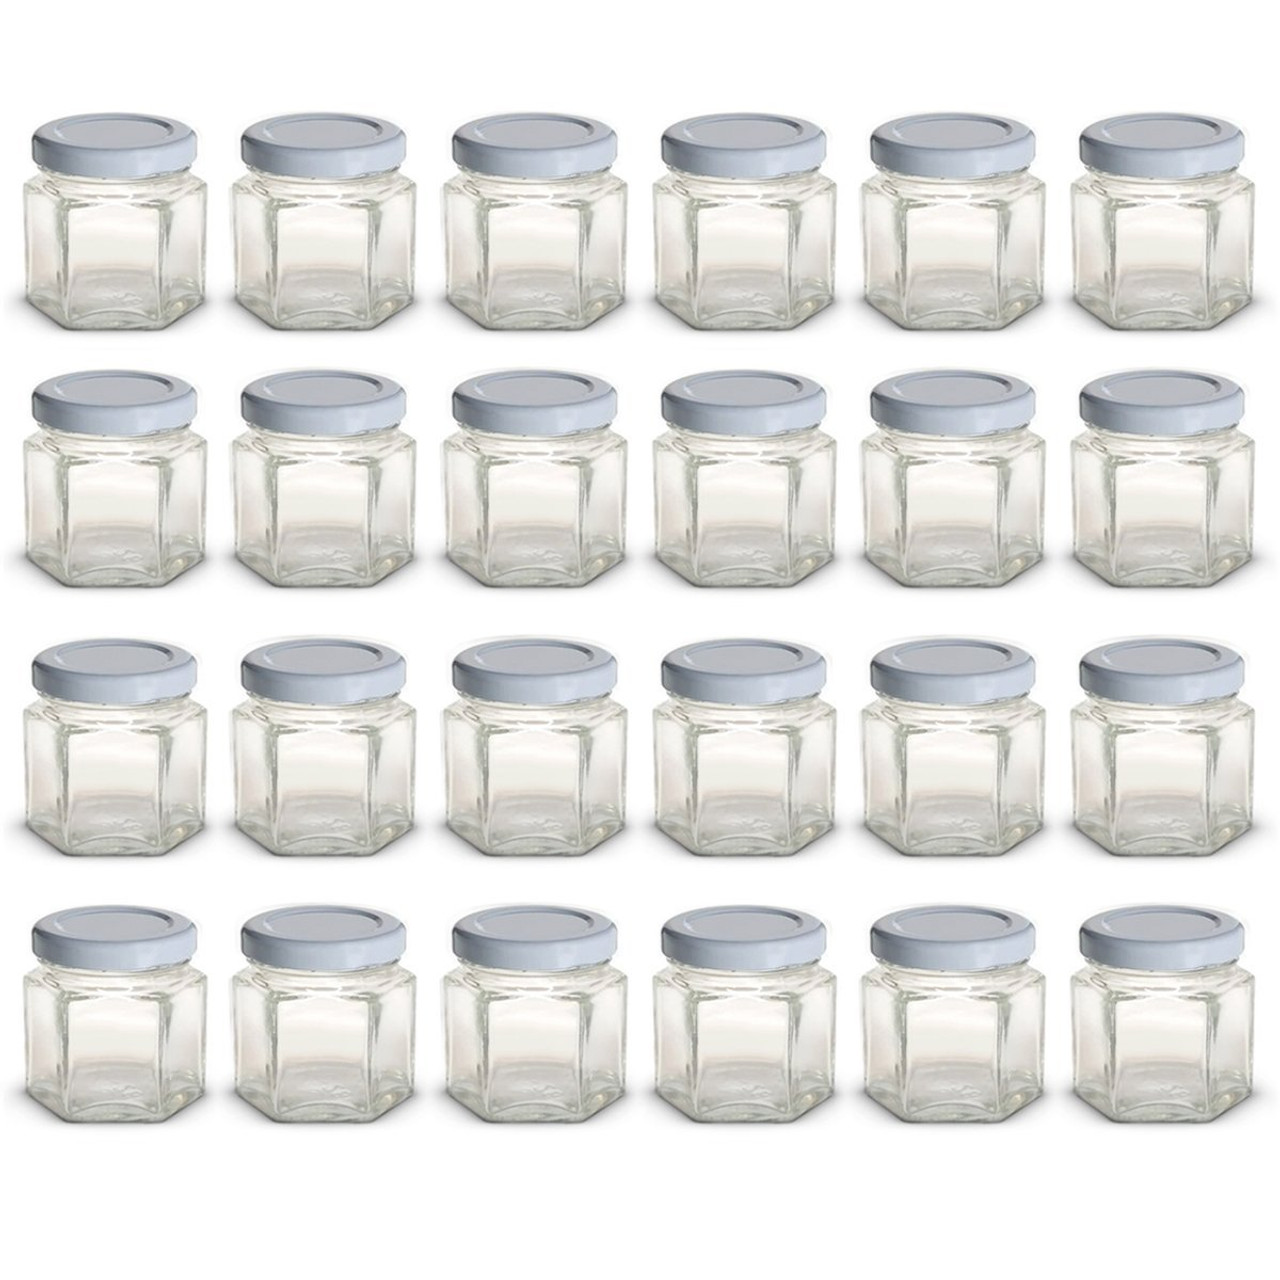 1 5 oz Mini Hexagon Glass Jars with WHITE Lids with Labels, Pack of 24